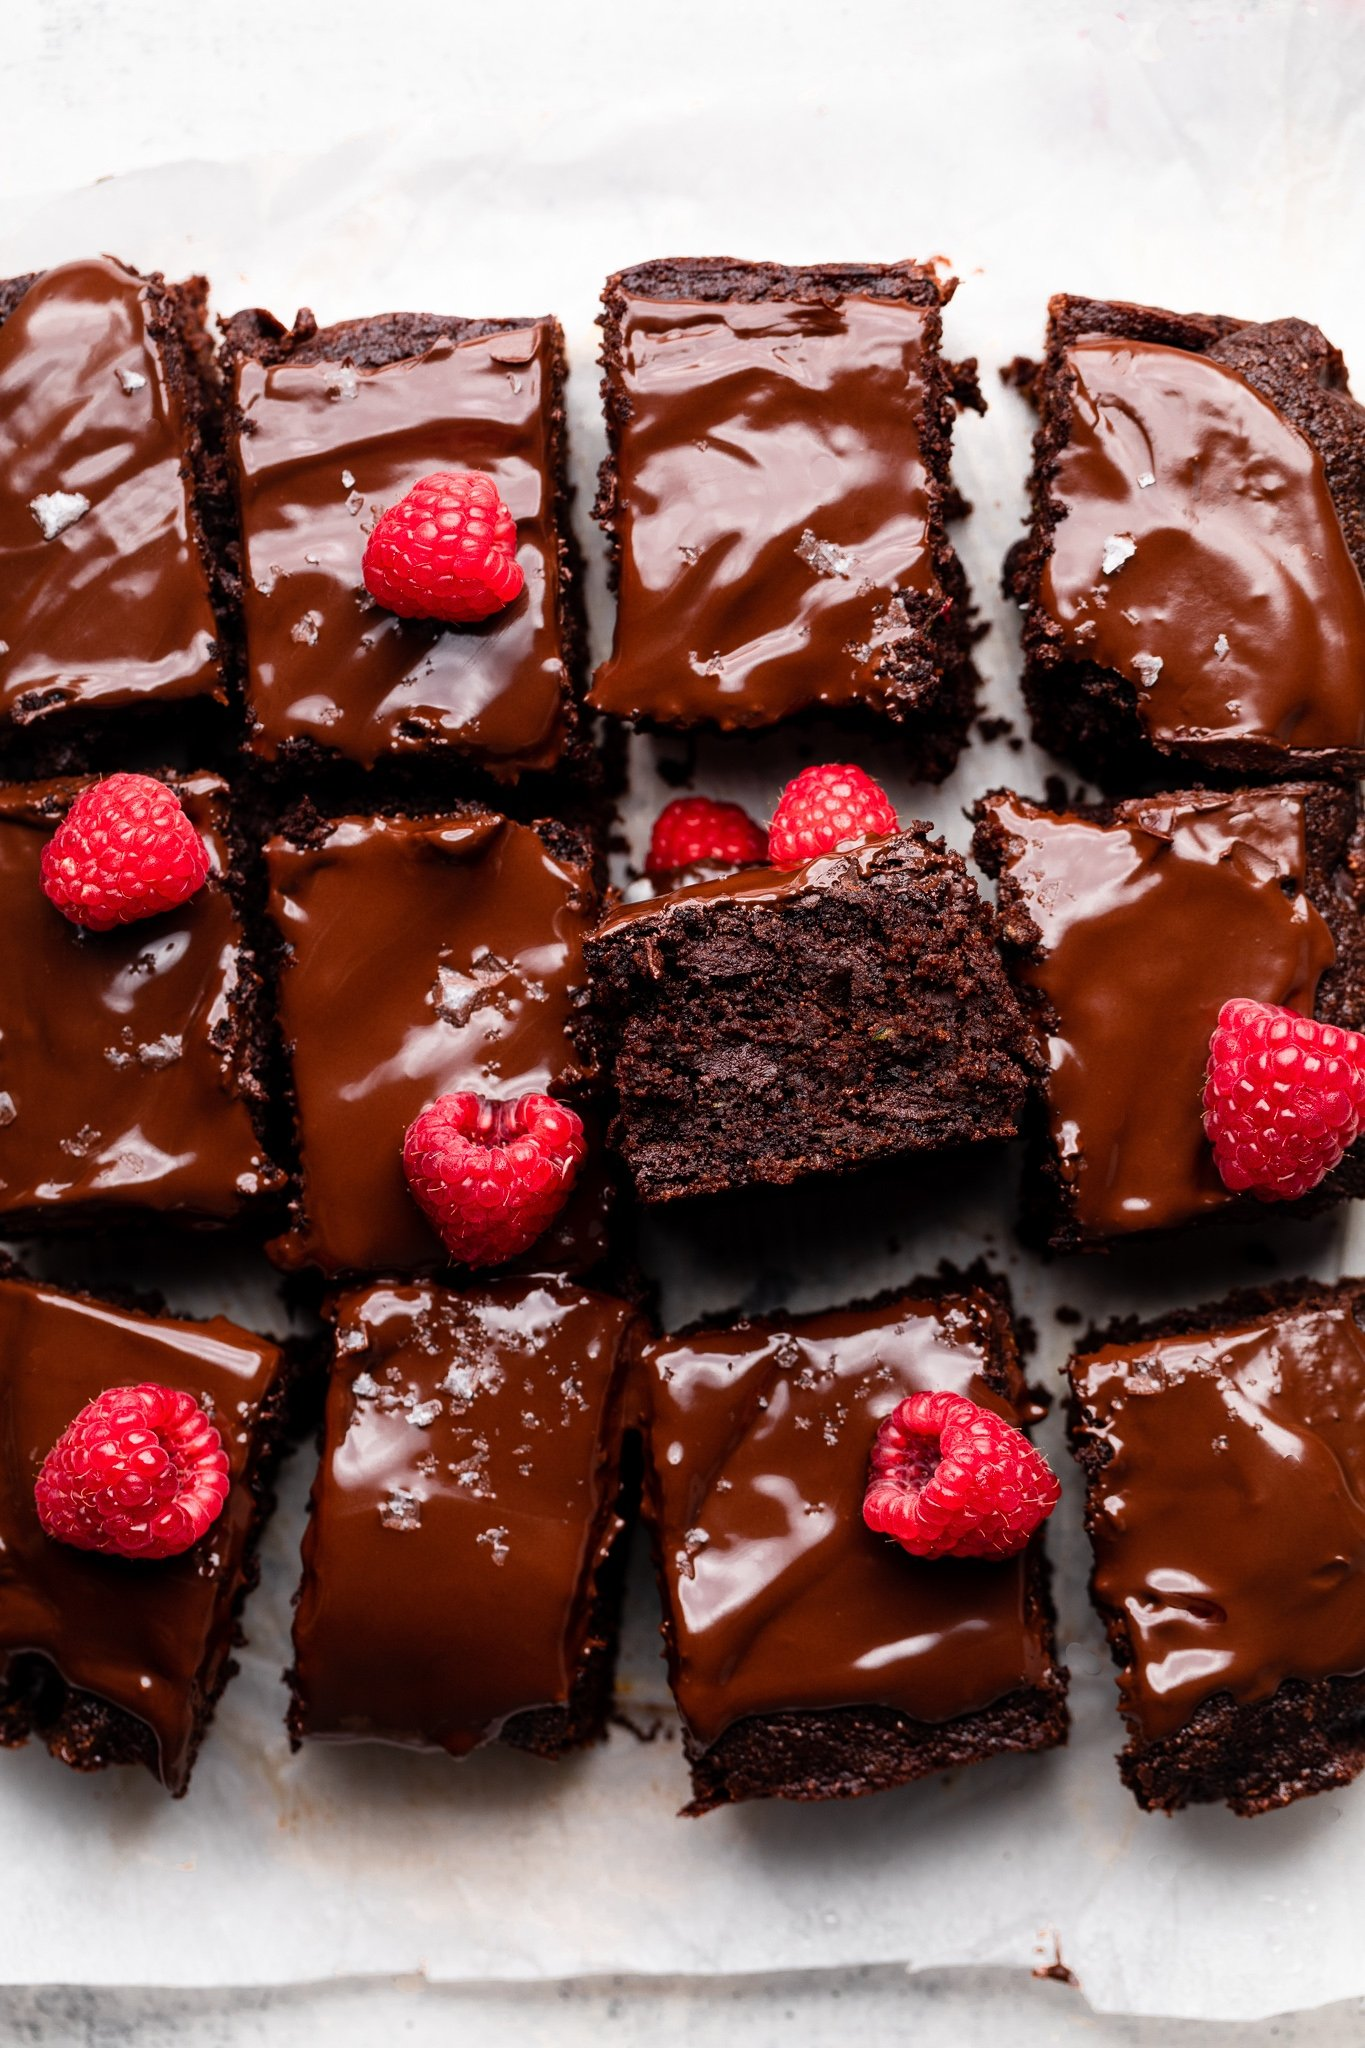 chocolate zucchini cake cut into squares and topped with raspberries